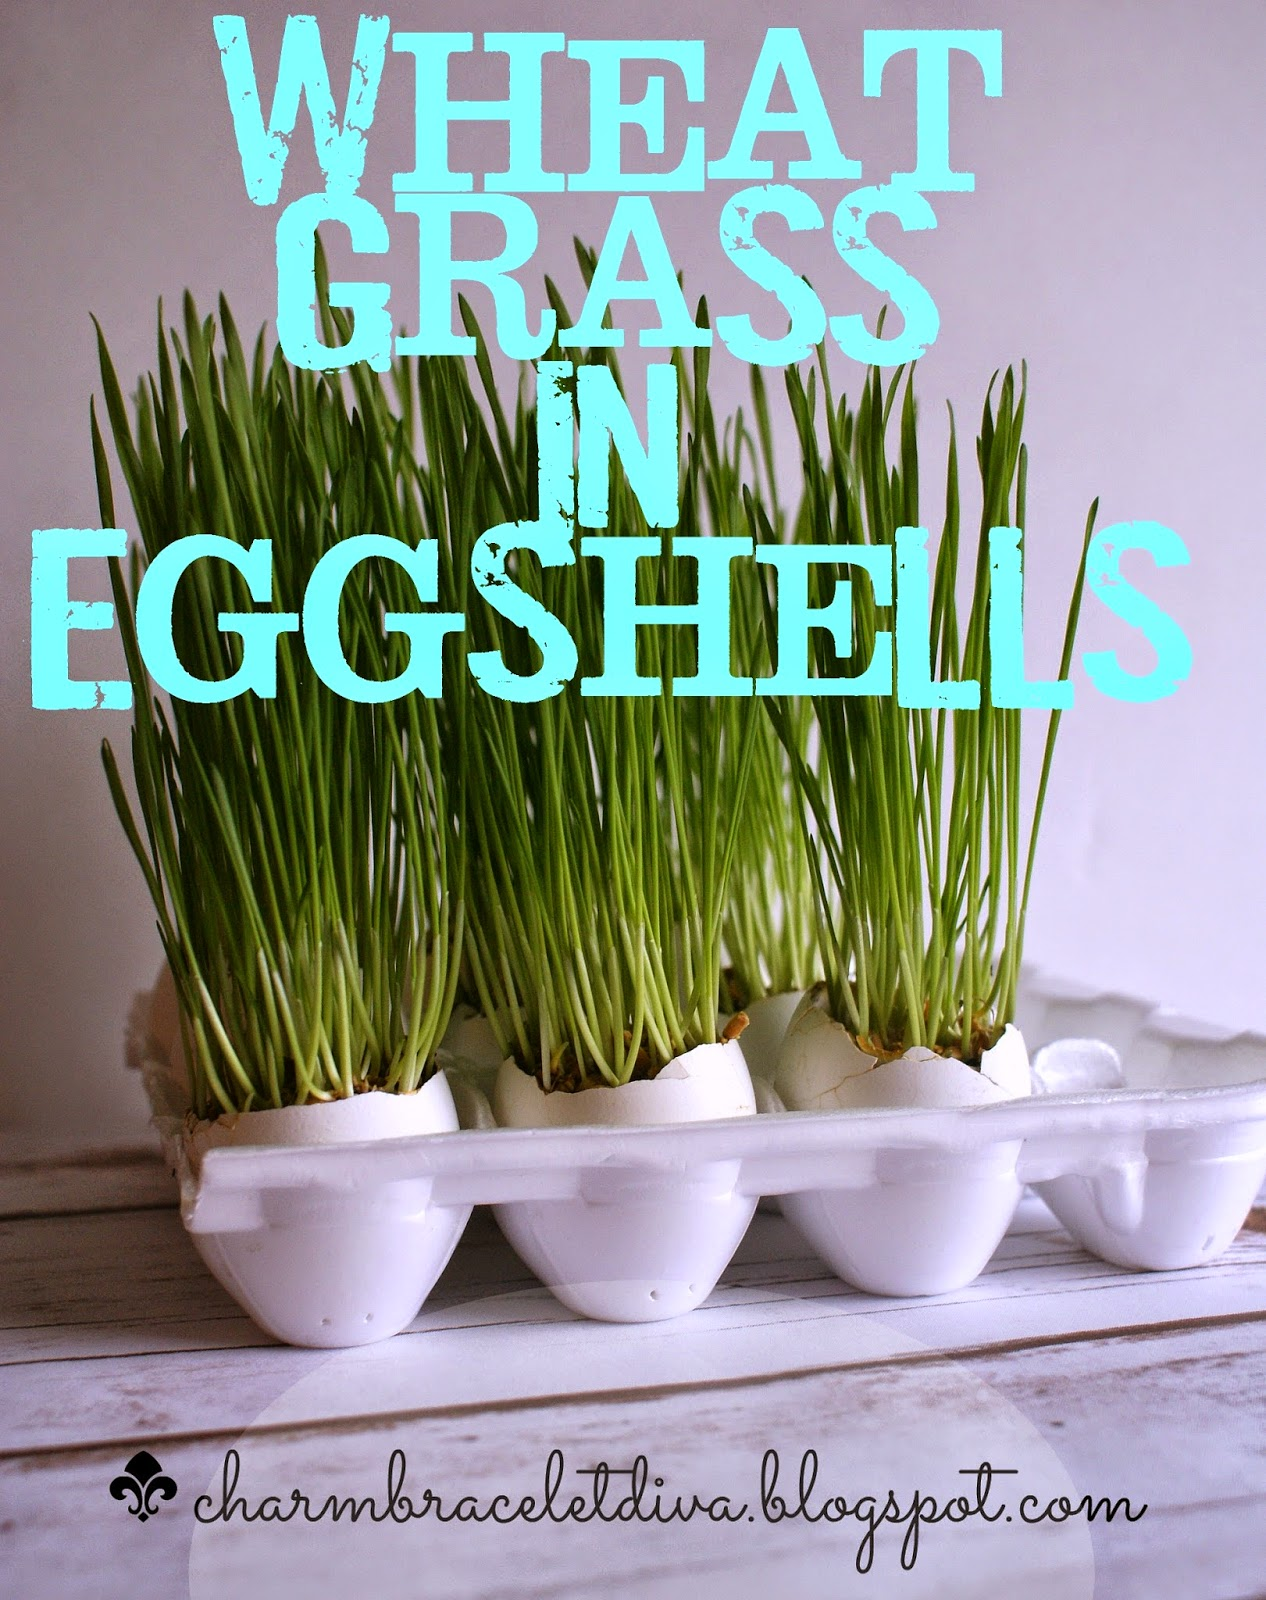 wheat grass growing in egg shells